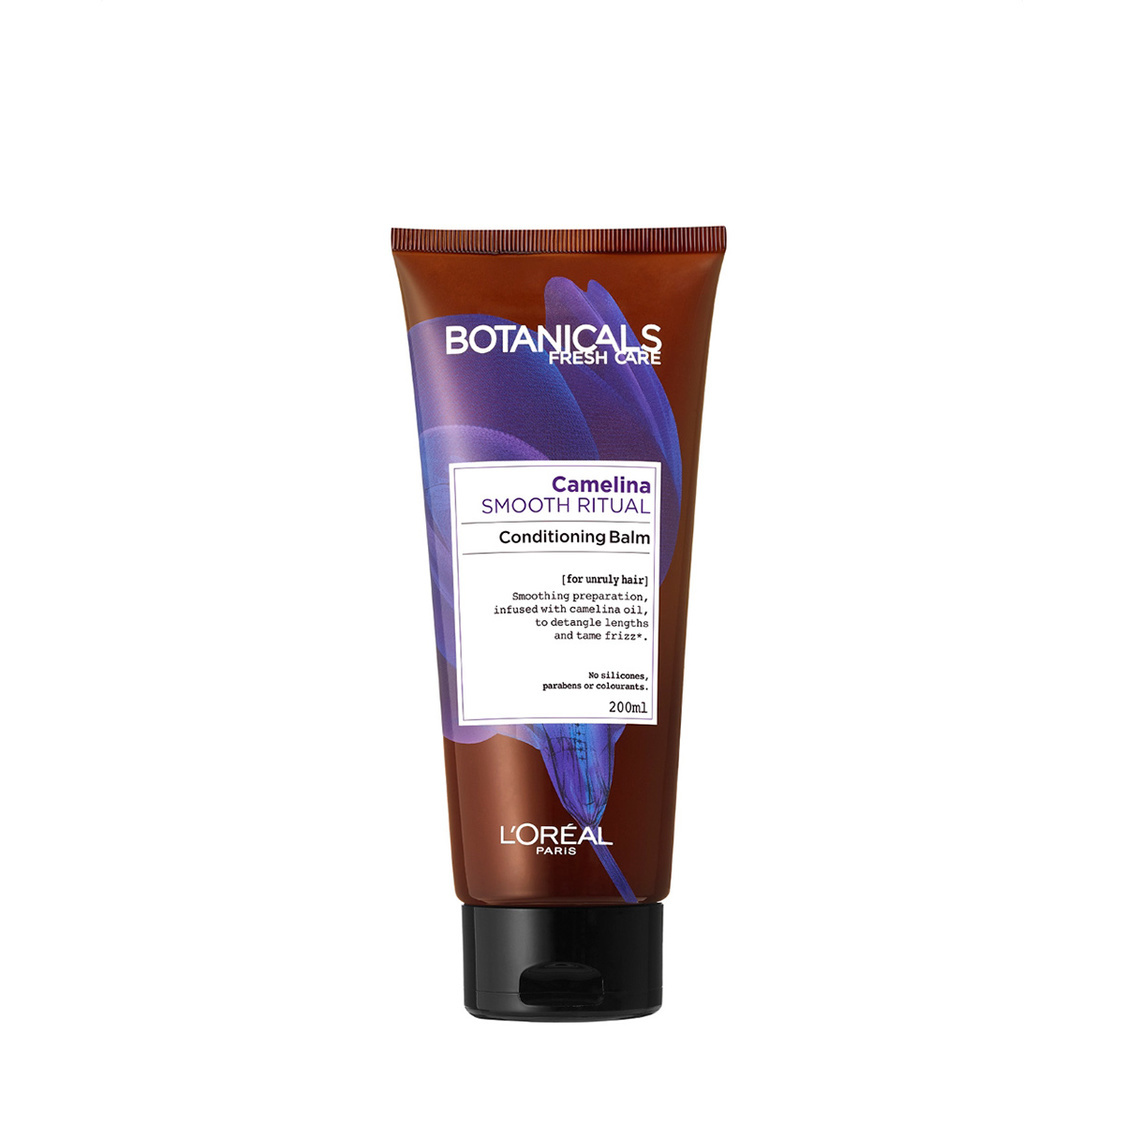 Botanicals Camelina Smooth Ritual Conditioner 200ml